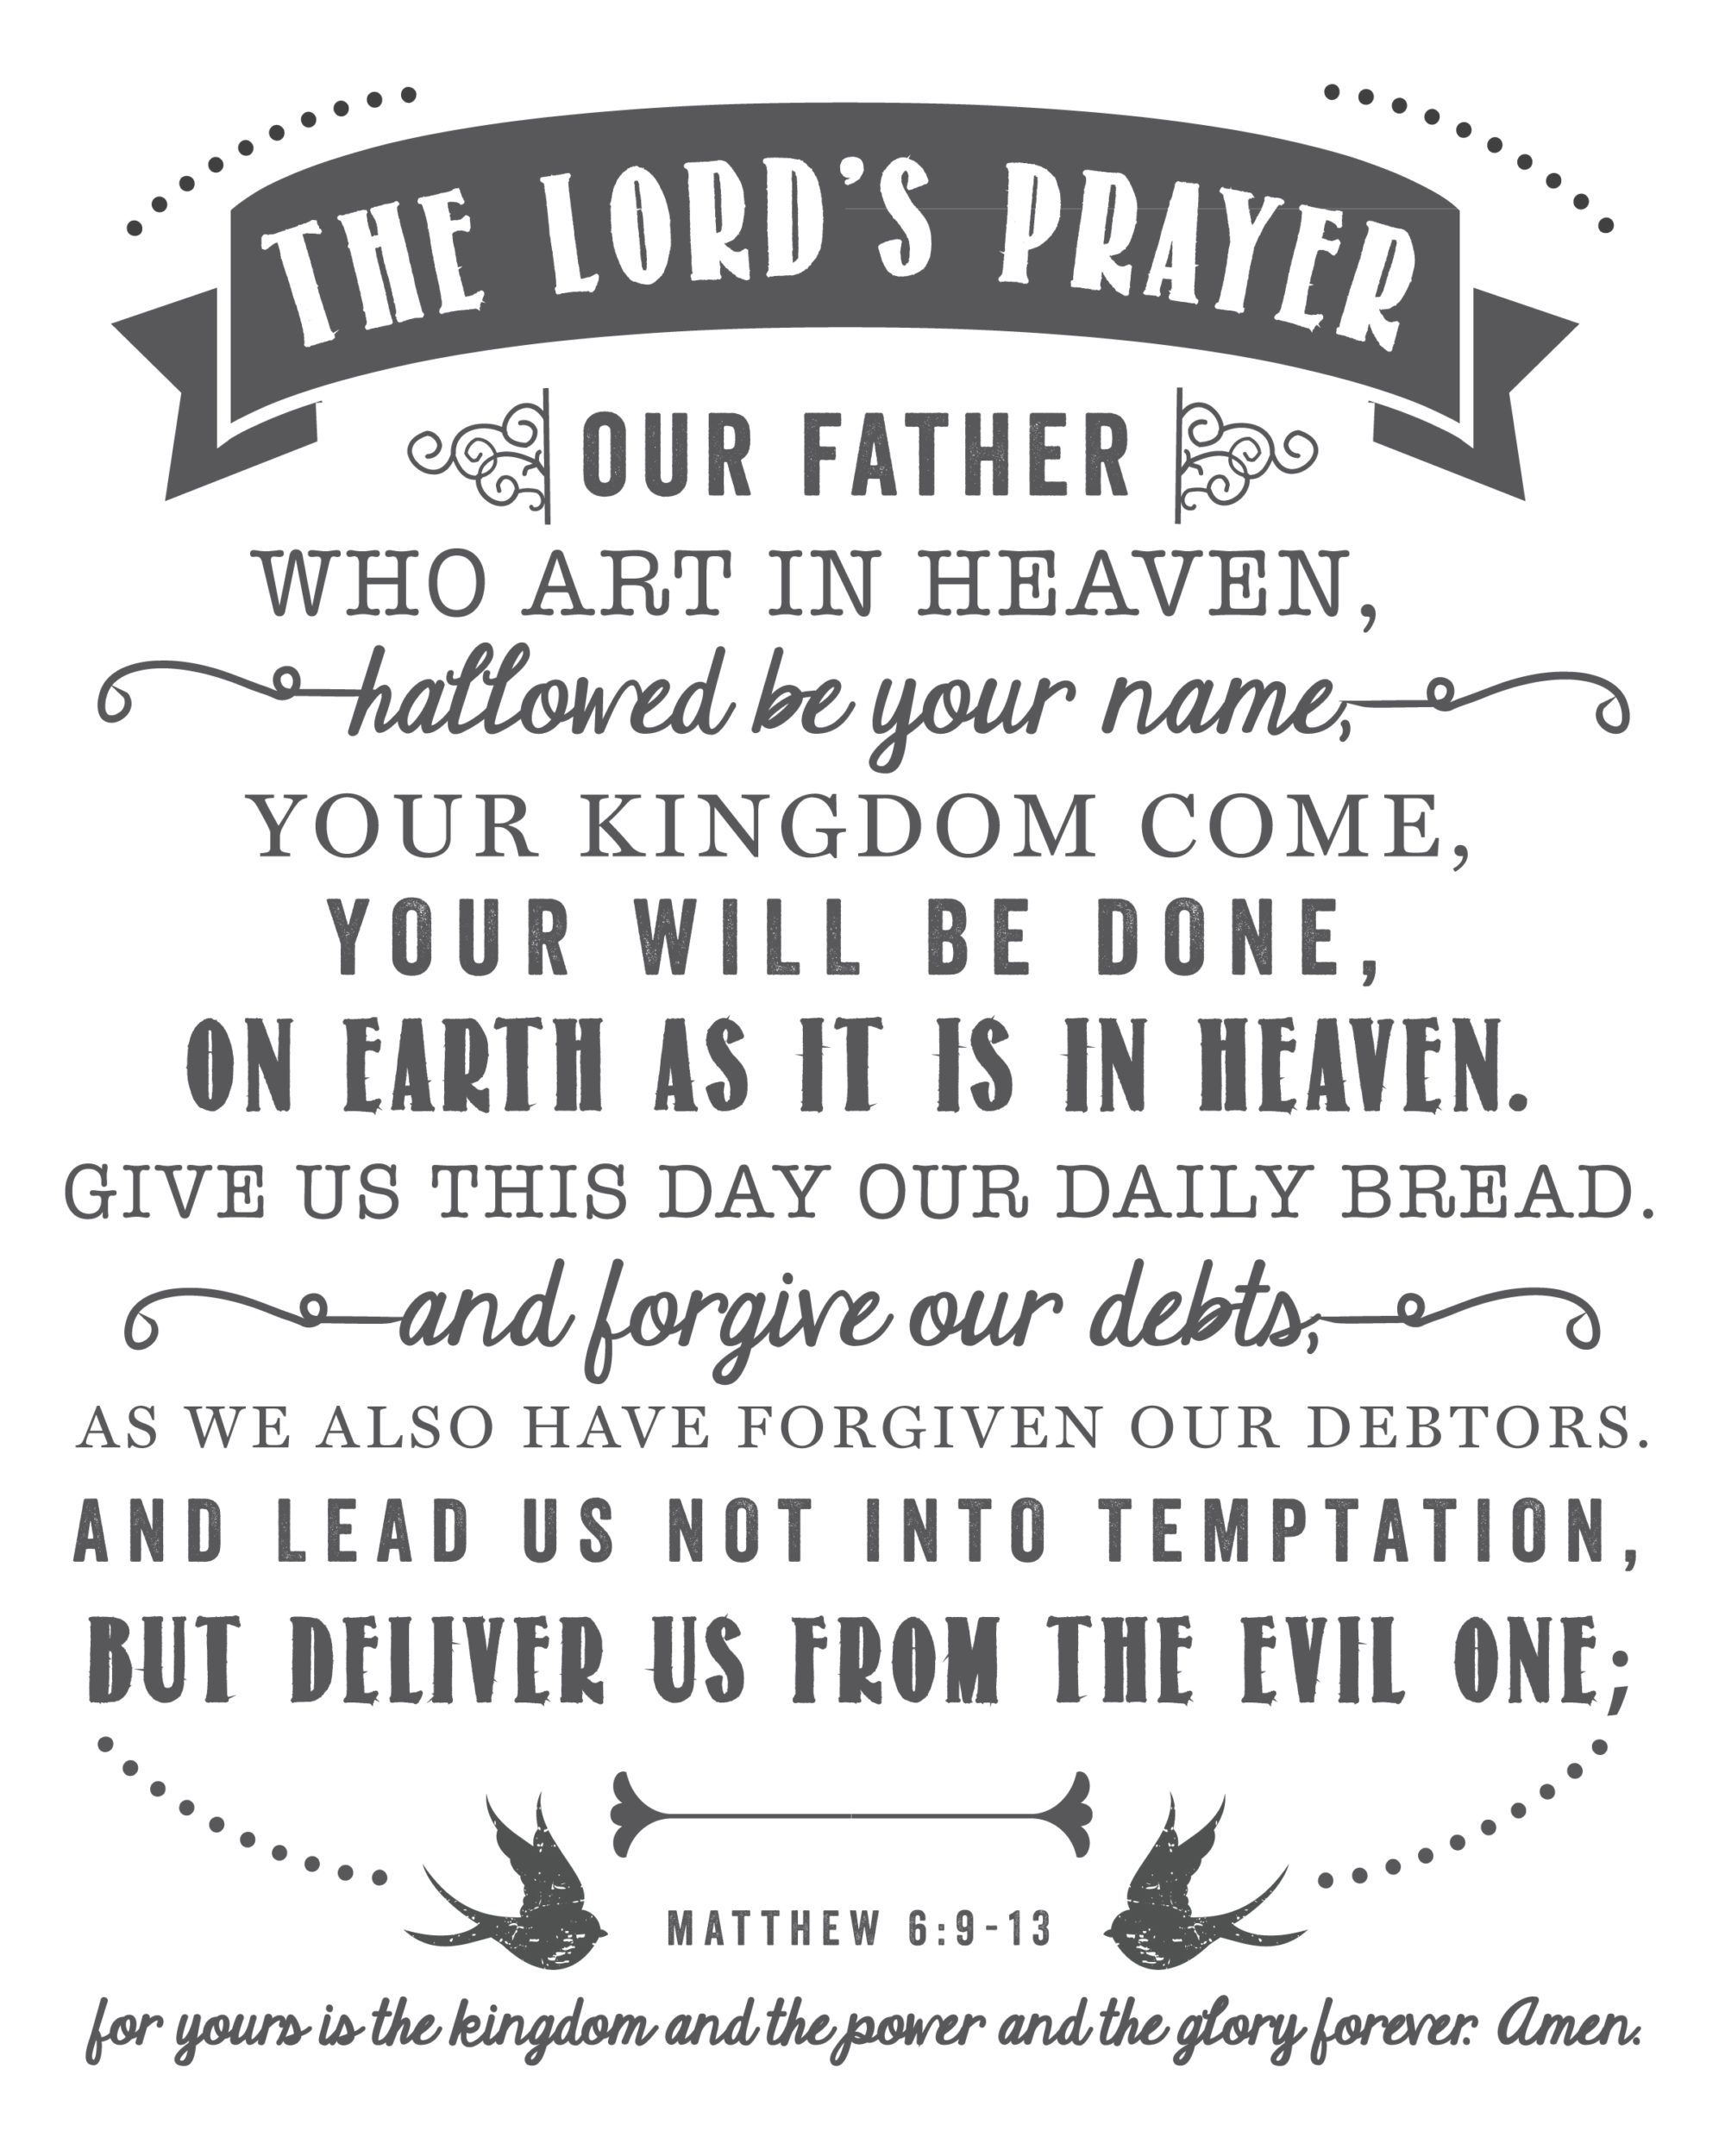 Hilaire image intended for printable copy of the lord's prayer